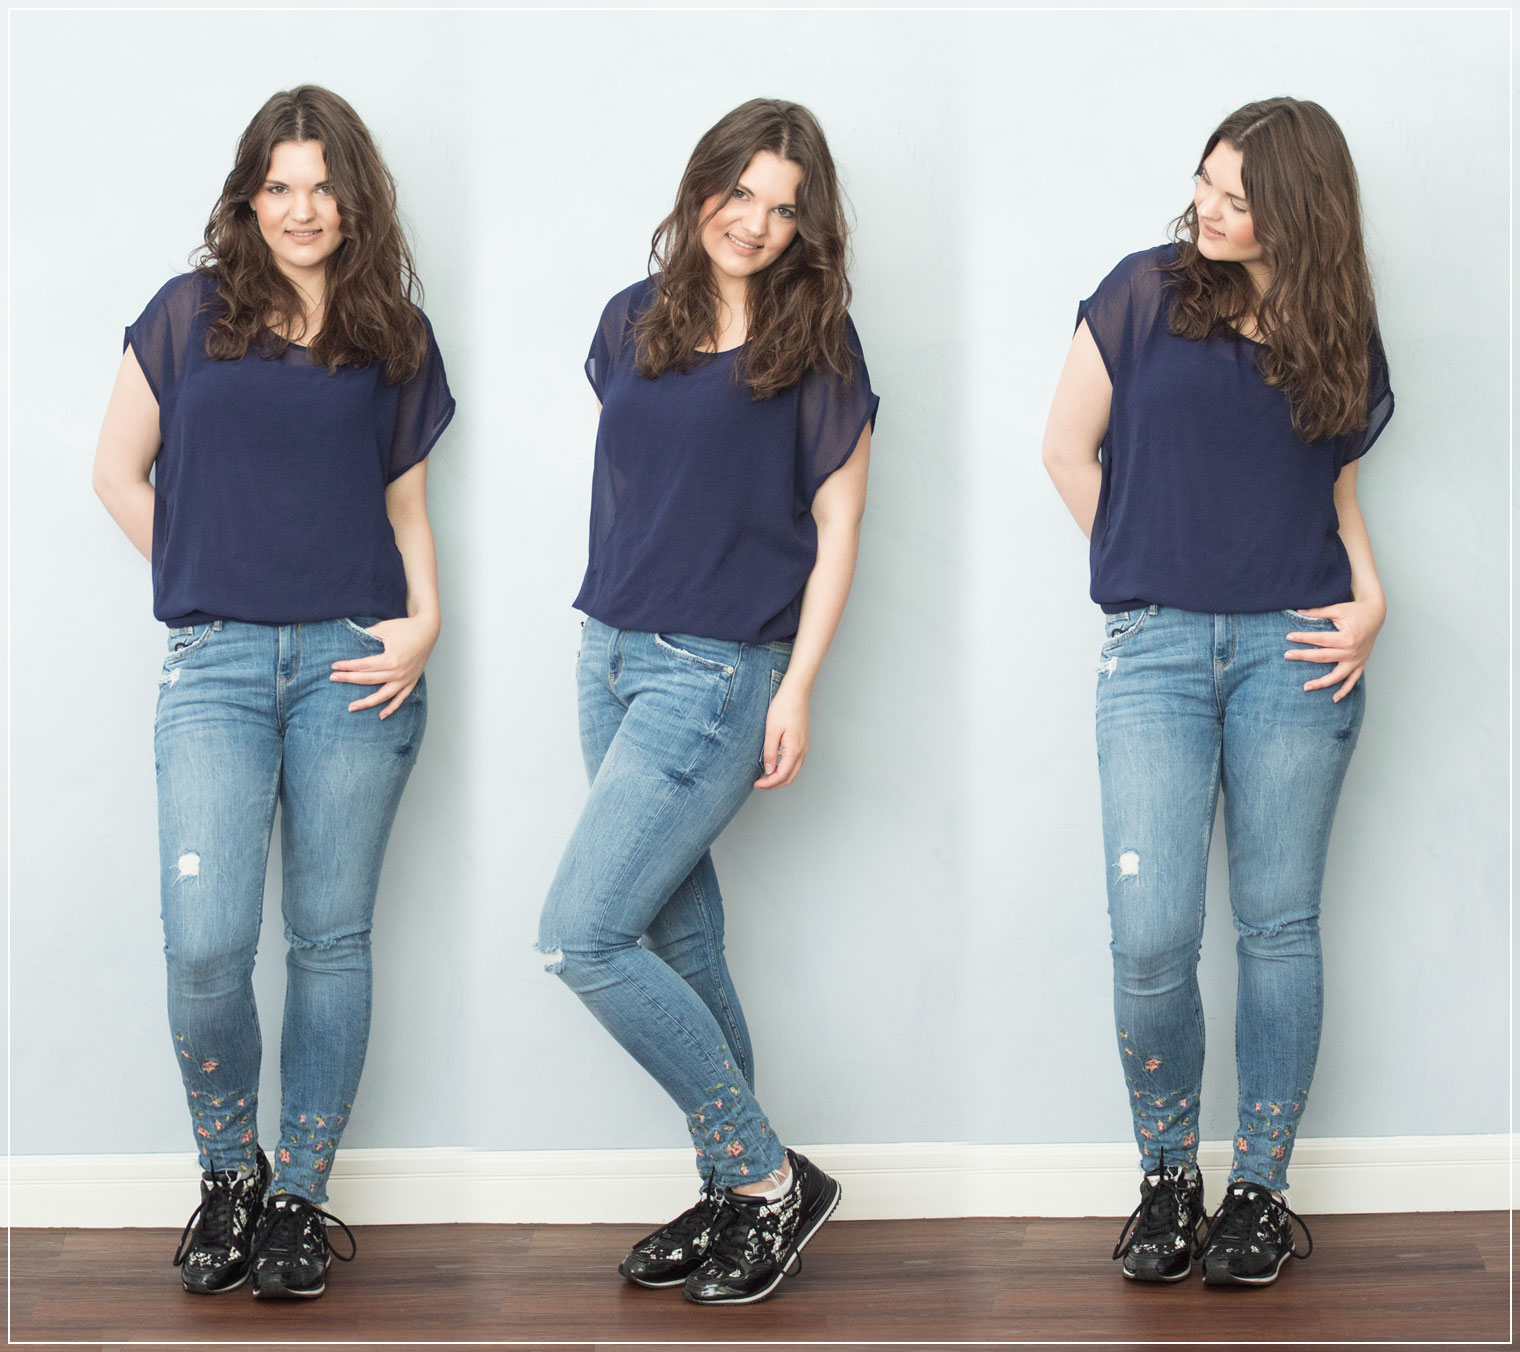 Monatsreview, Dailylook, Sommeroutfit, Sommer, Sommestyle